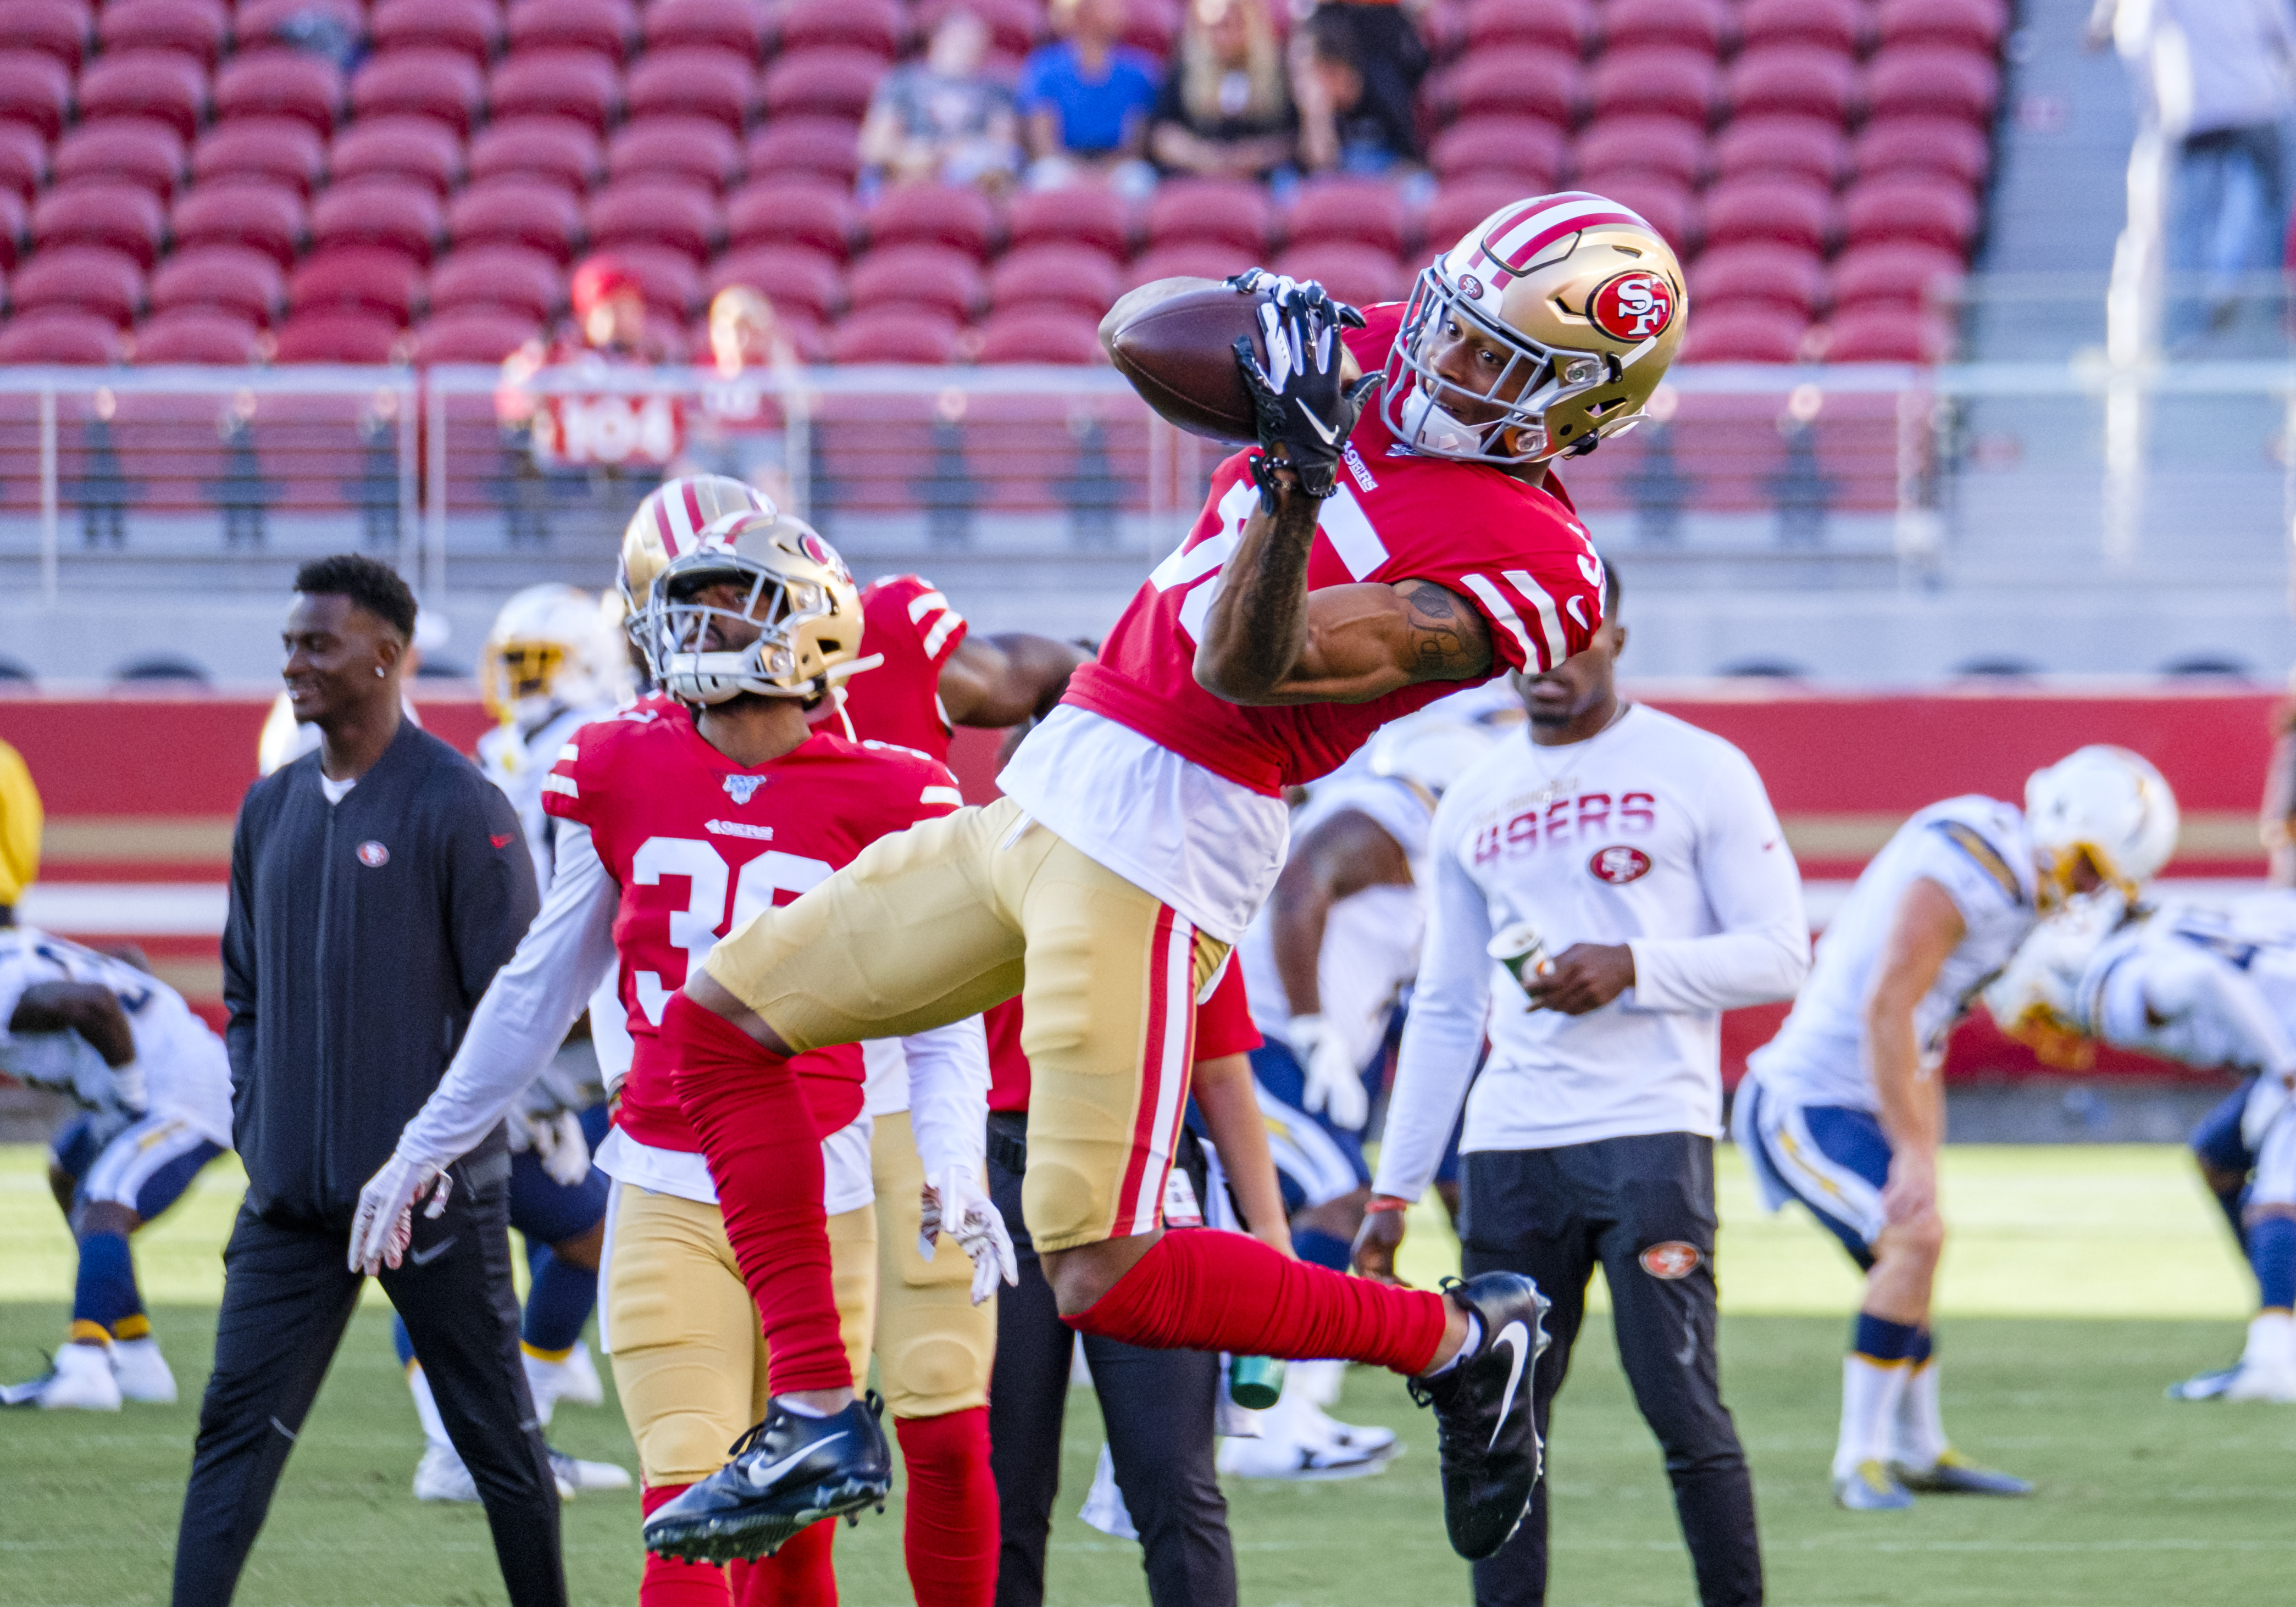 NFL: AUG 29 Preseason - Chargers at 49ers